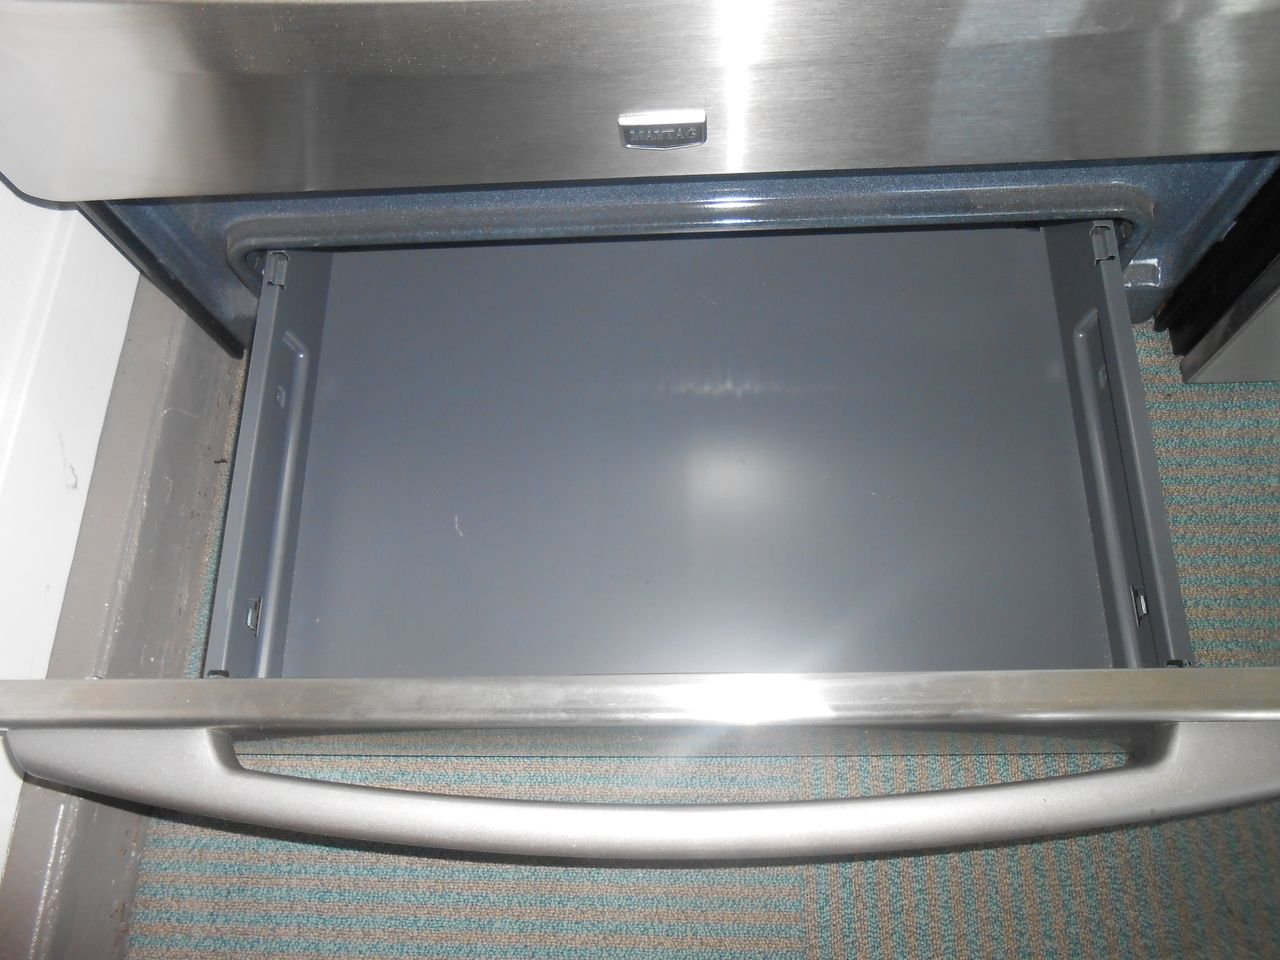 Appliance city maytag induction range with convection